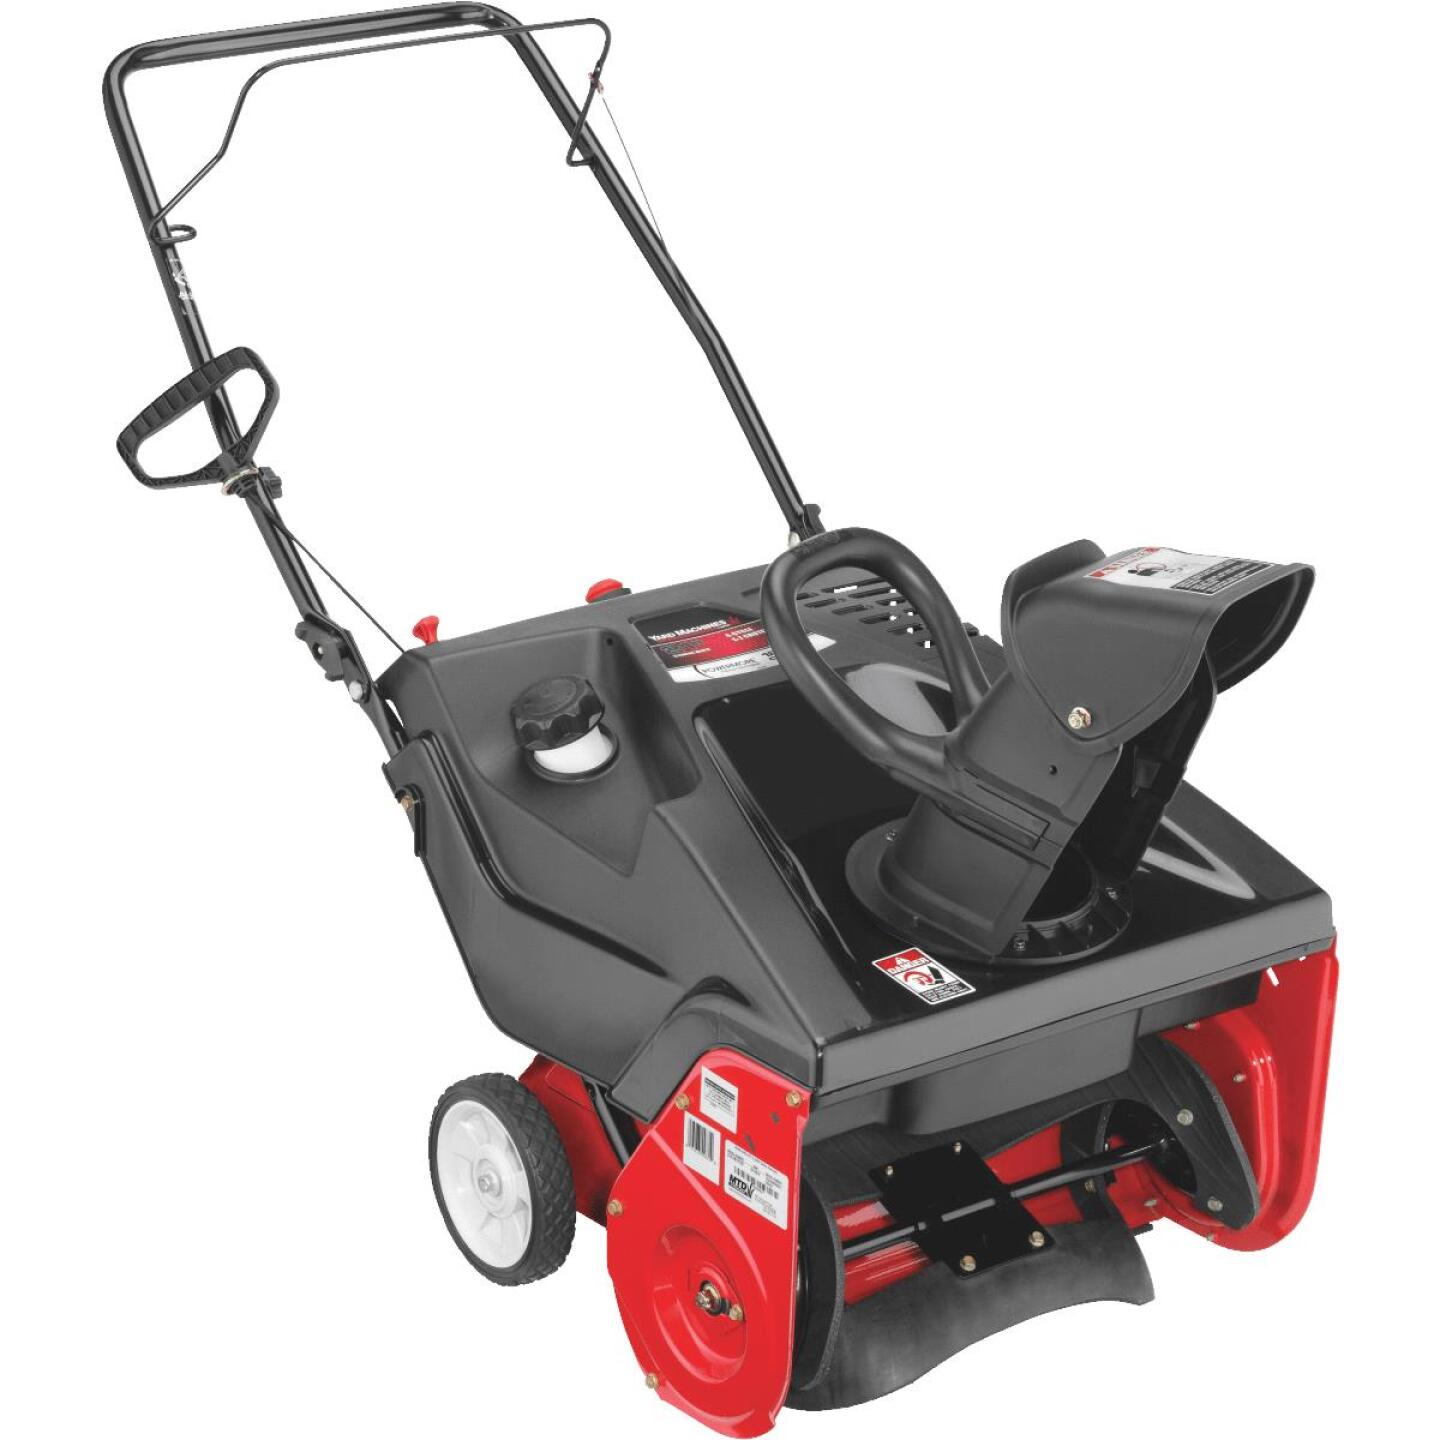 Troy-Bilt 21 In. 123cc Single-Stage Gas Snow Blower Image 1